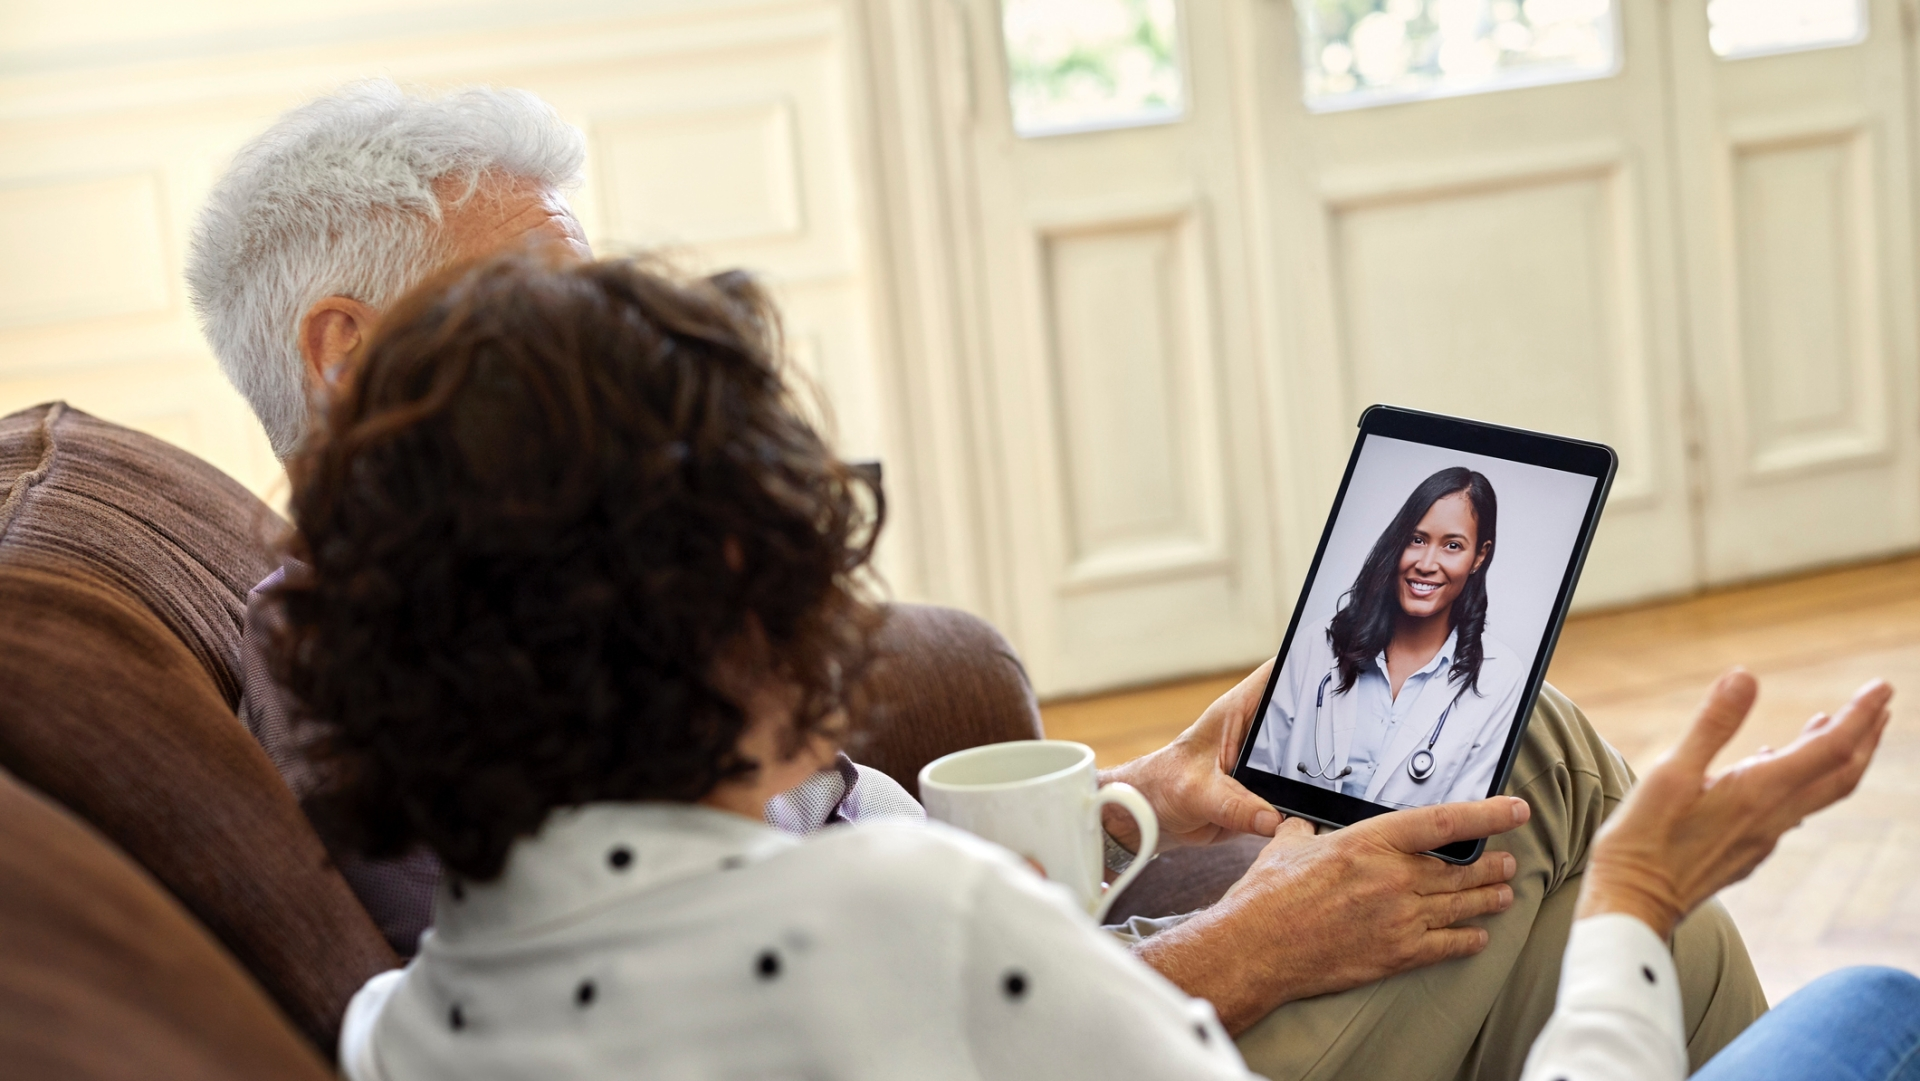 Telemedicine is a safe way to receive access to care during the coronavirus pandemic